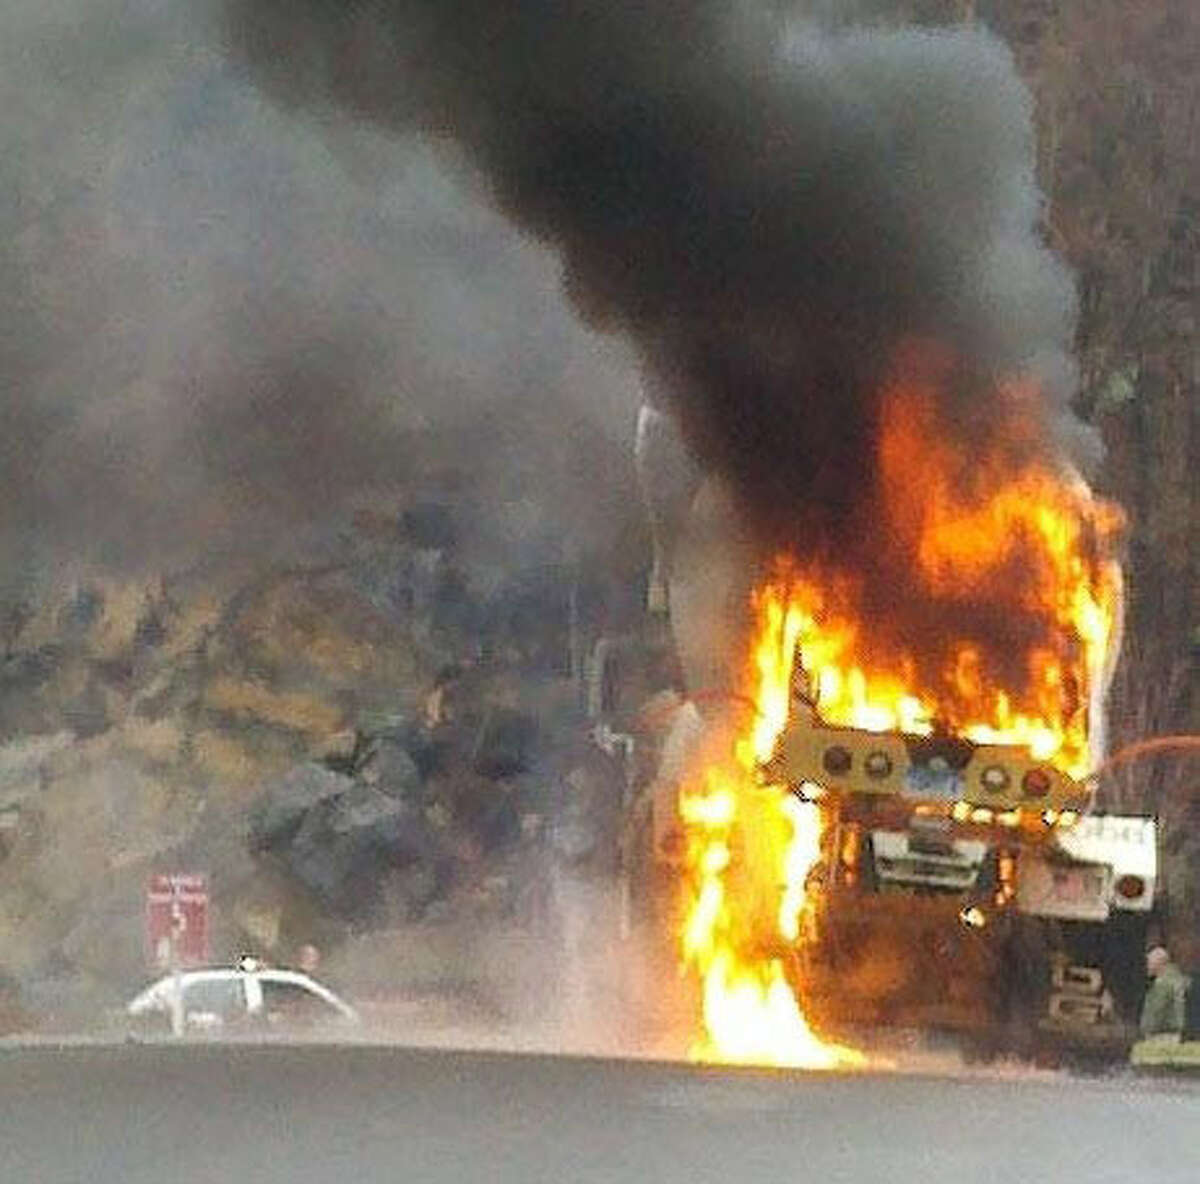 Bethel firefighters responded to a cement truck fire on Thursday, April 7, 2011. (Photo: Bethel Fire Department)